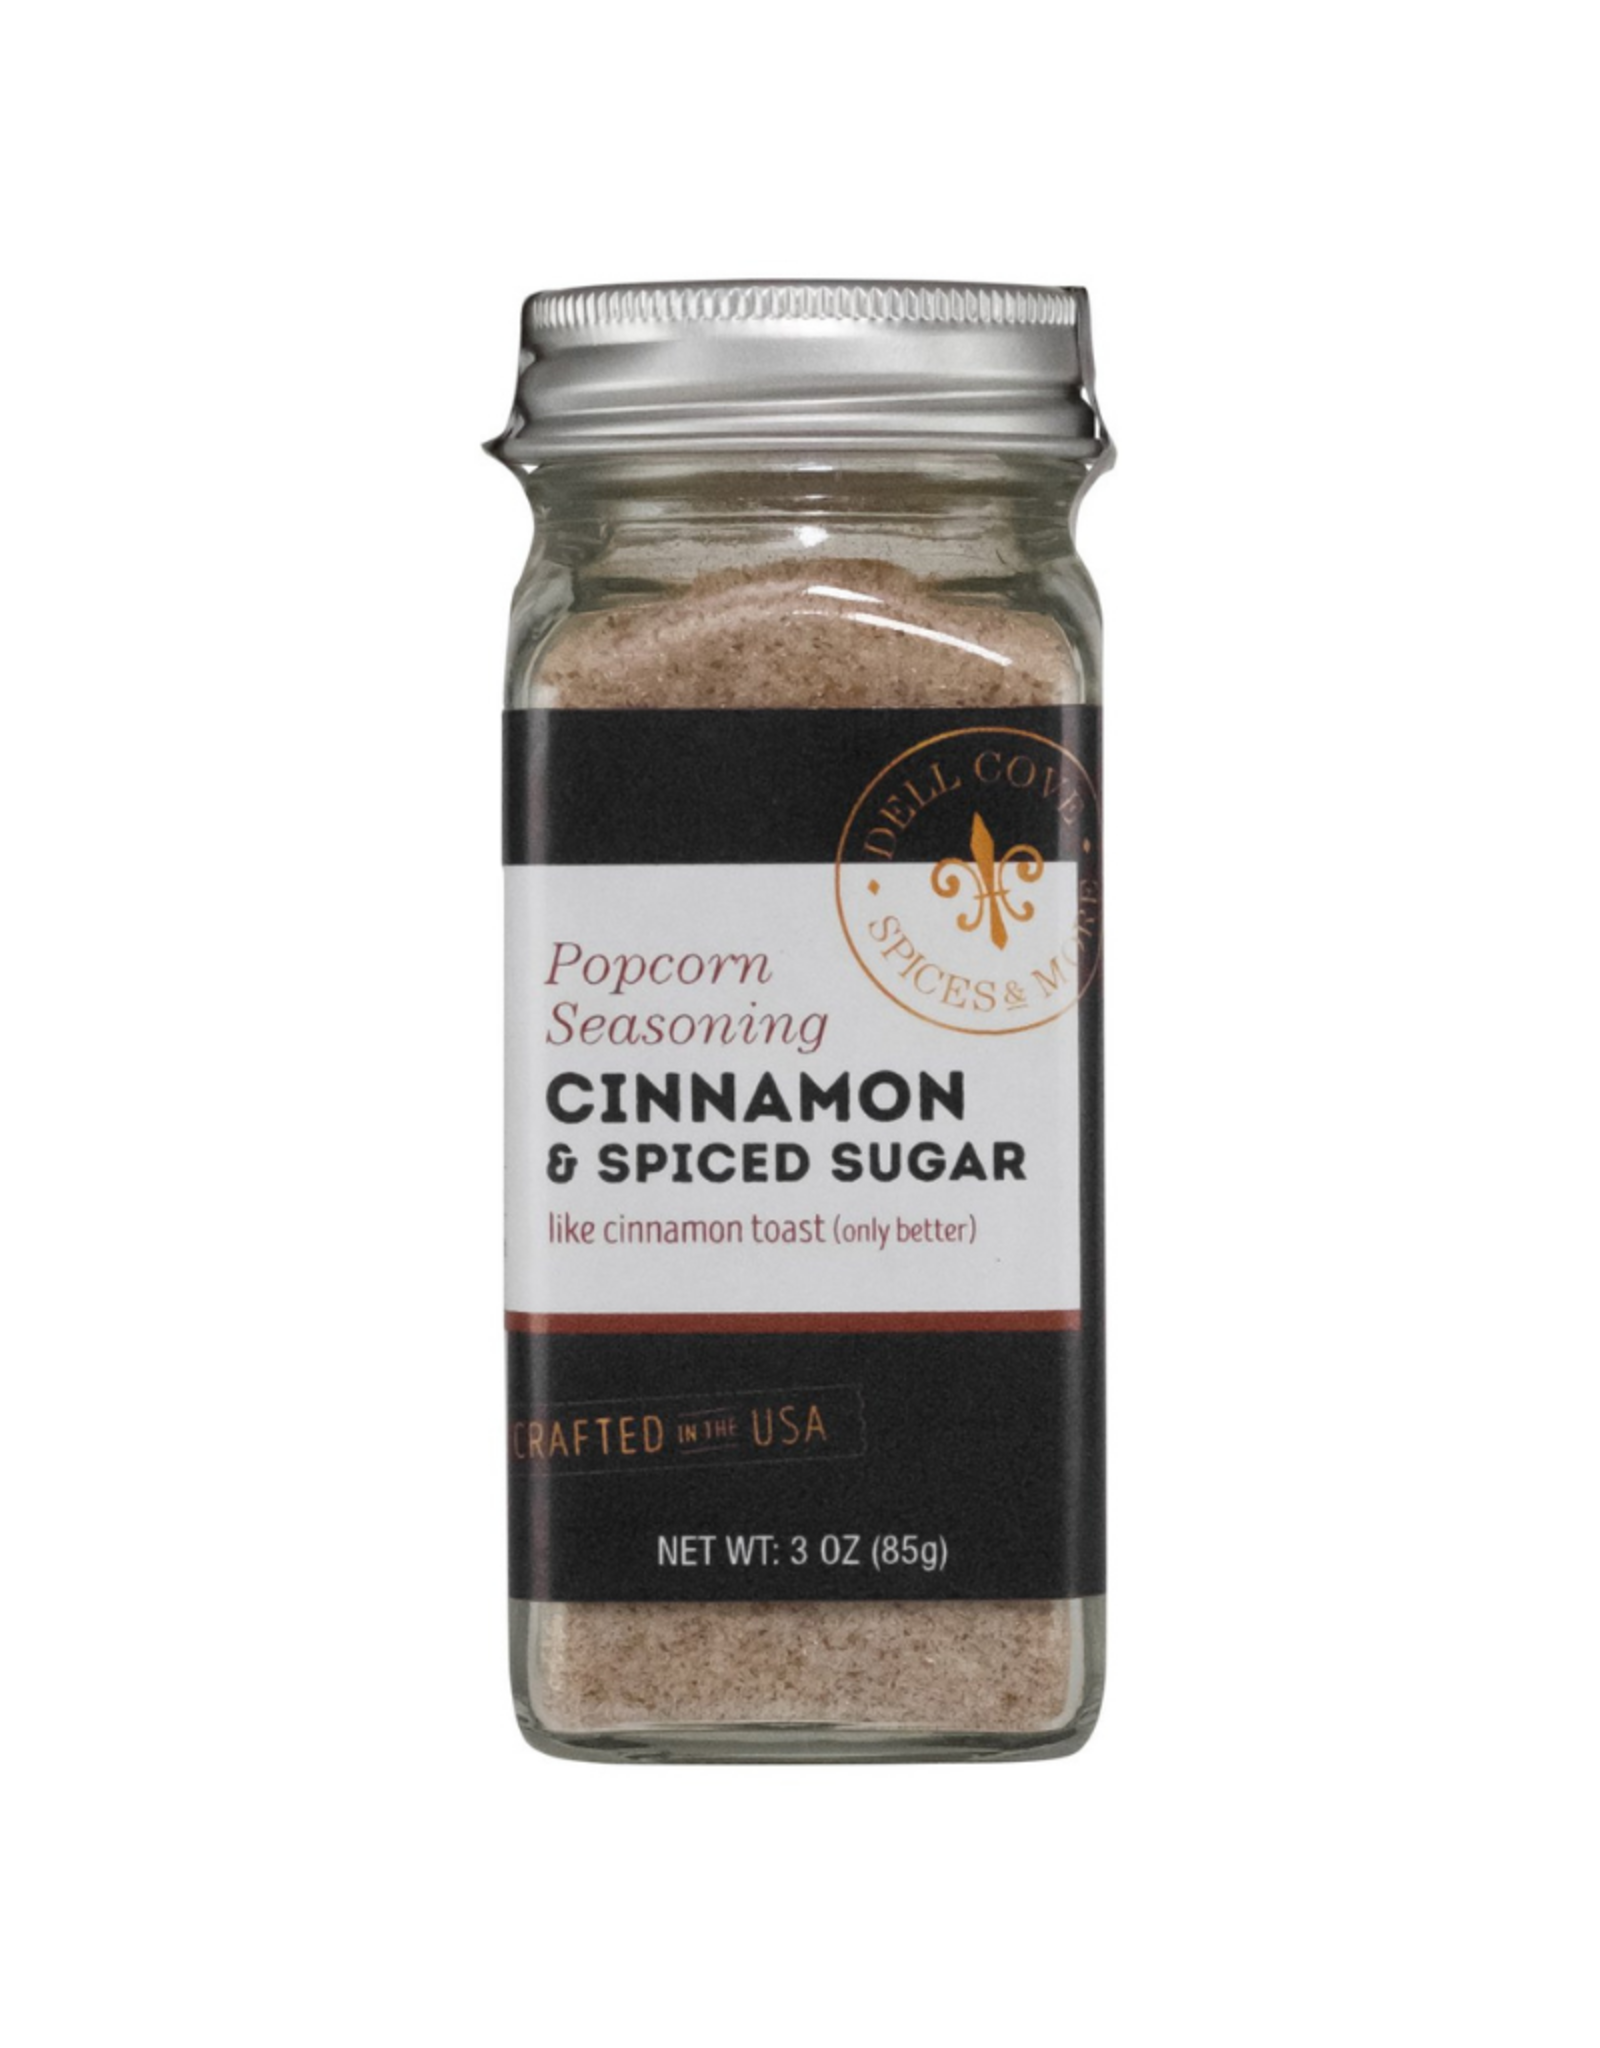 Dell Cove Spices & More Co. Sweet Popcorn Seasoning - Cinnamon & Spiced Sugar